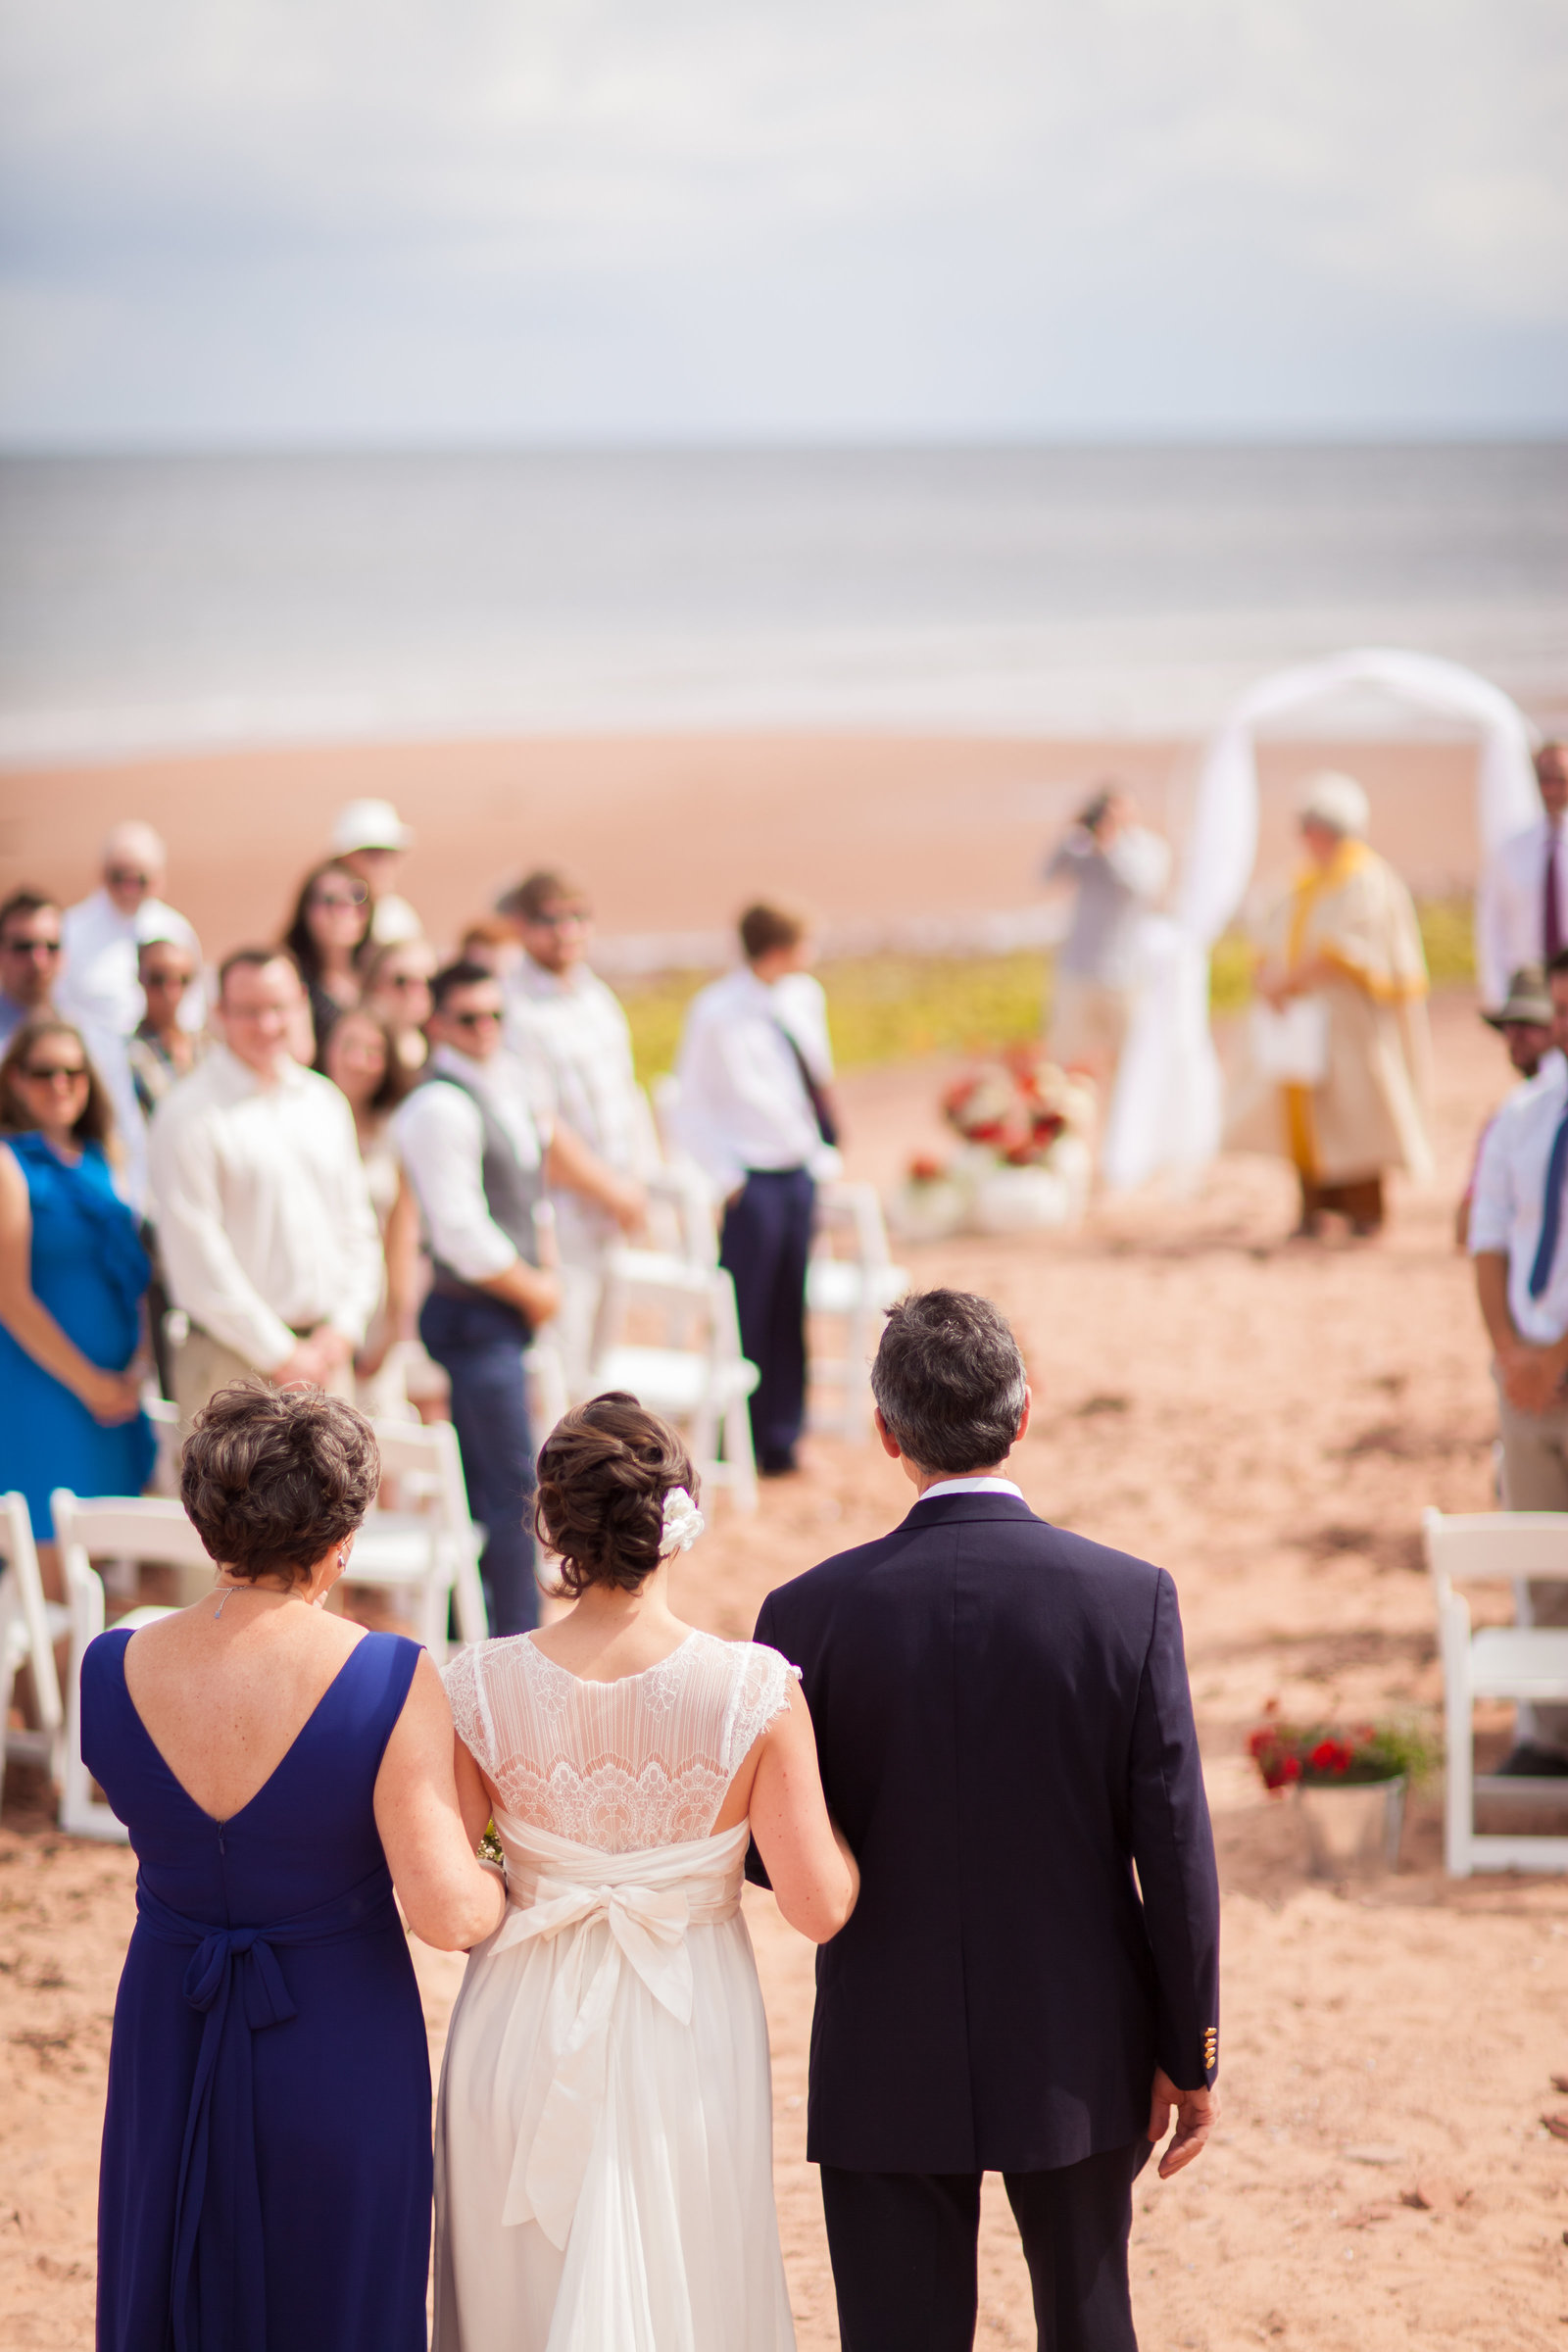 Saint John NB Wedding Photographers & Filmmakers - Souris, PEI Wedding26